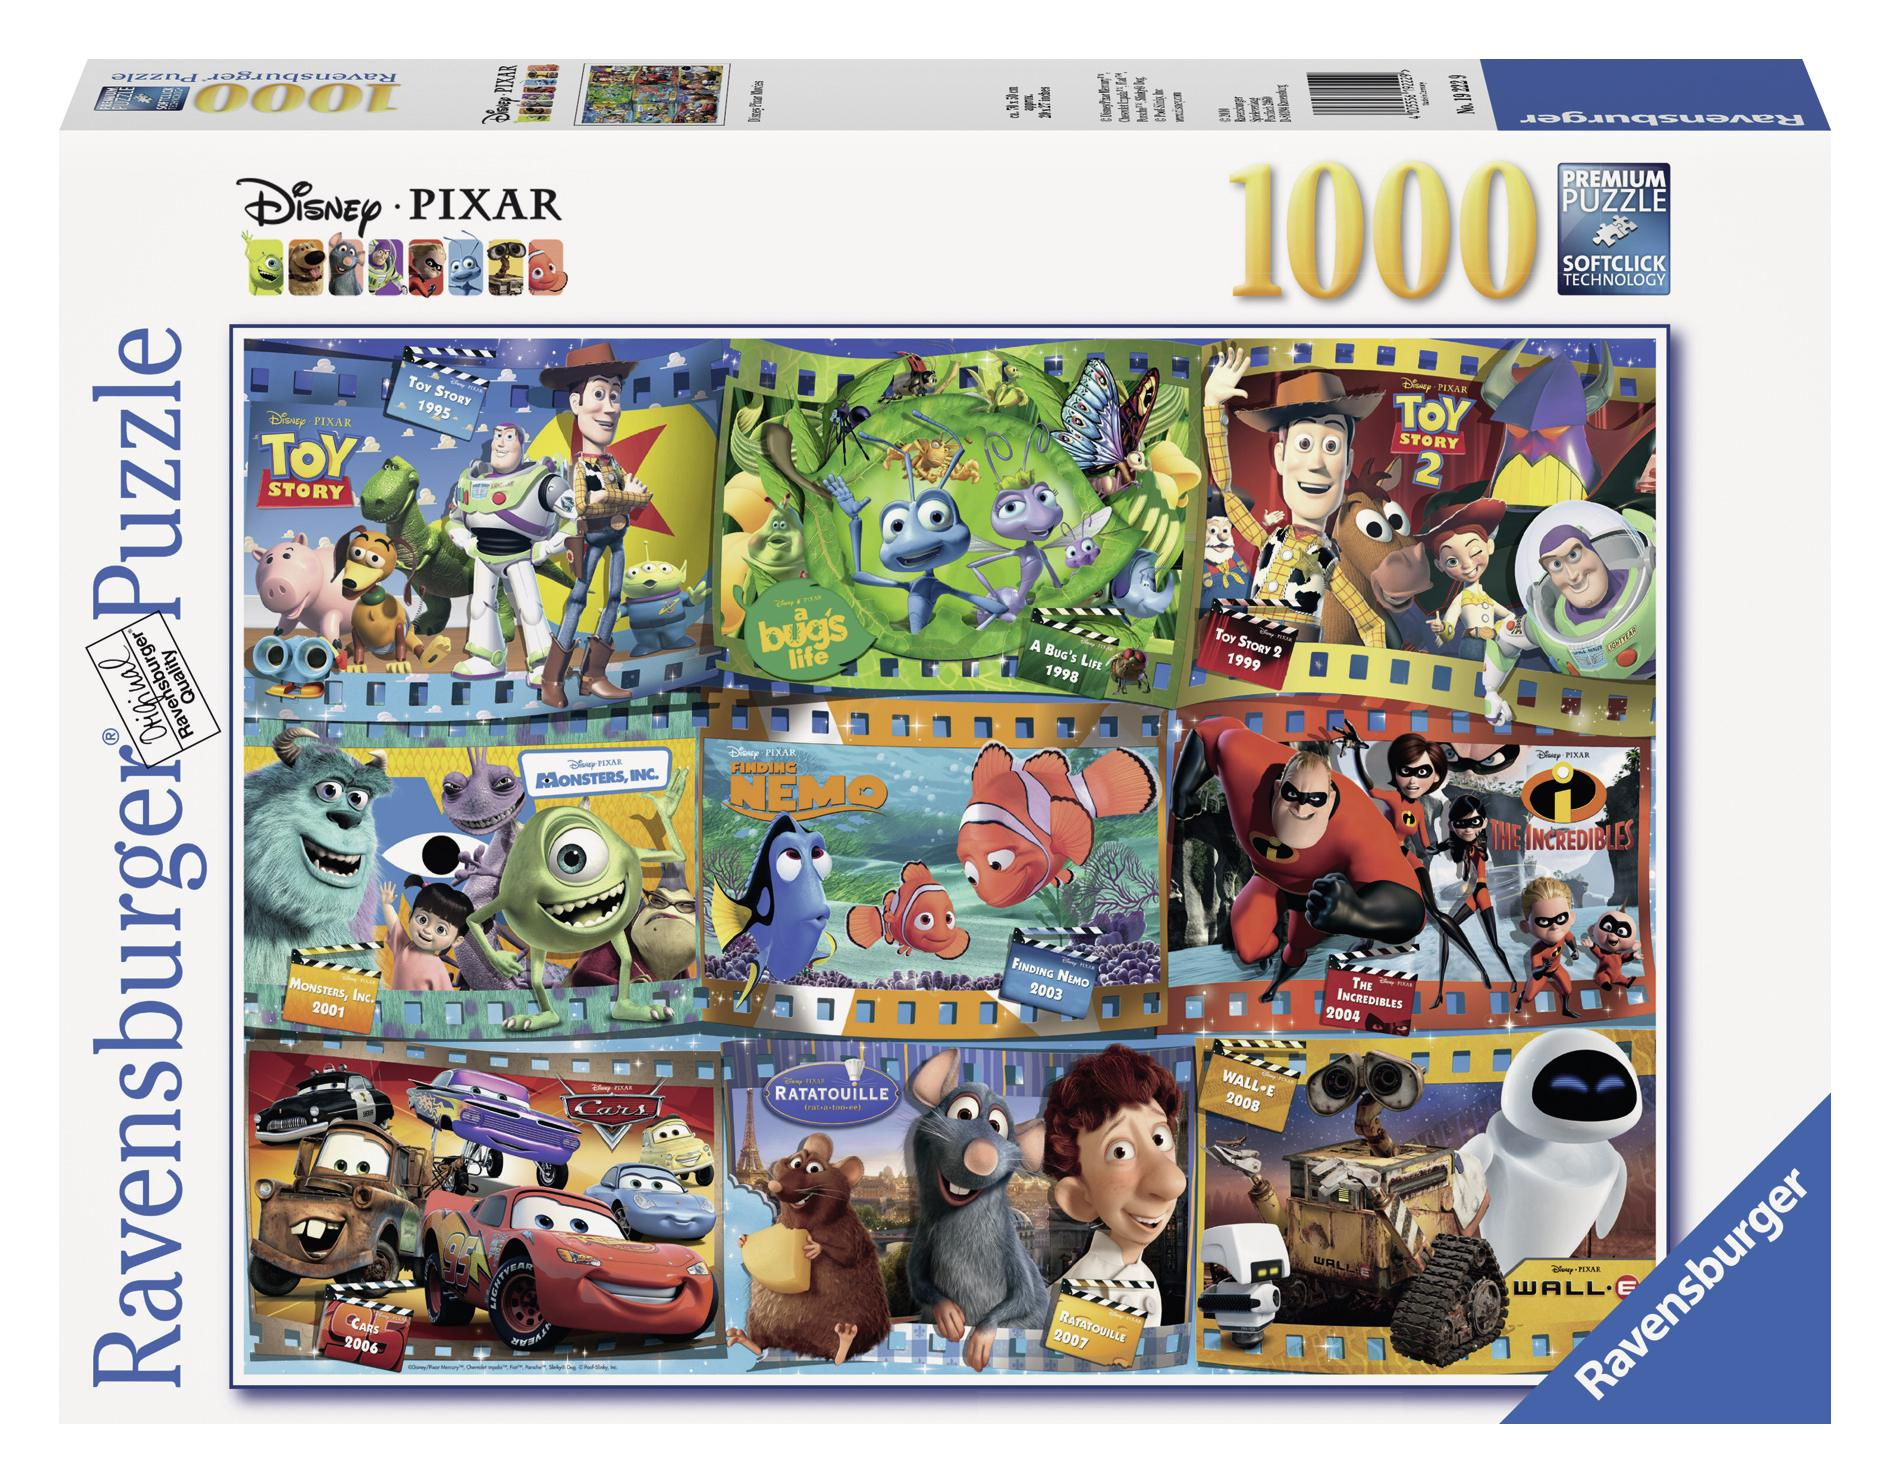 Puzzle-Disney Pixar Movies (Other) by Ravensburger